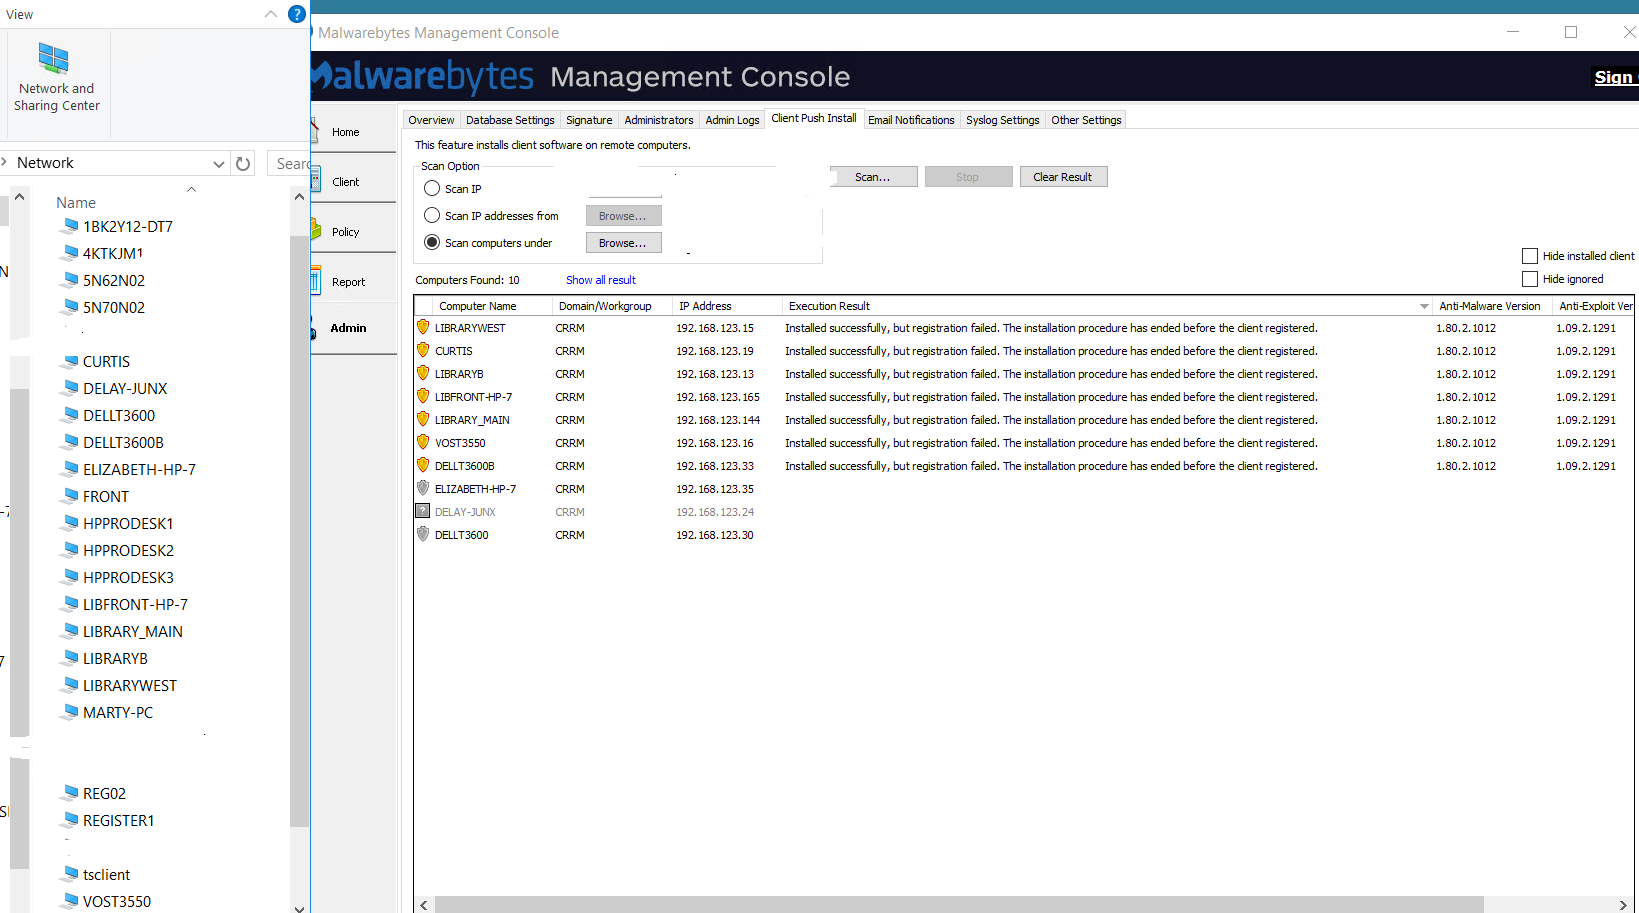 Management Console Client Push Install shows The Network Path Was